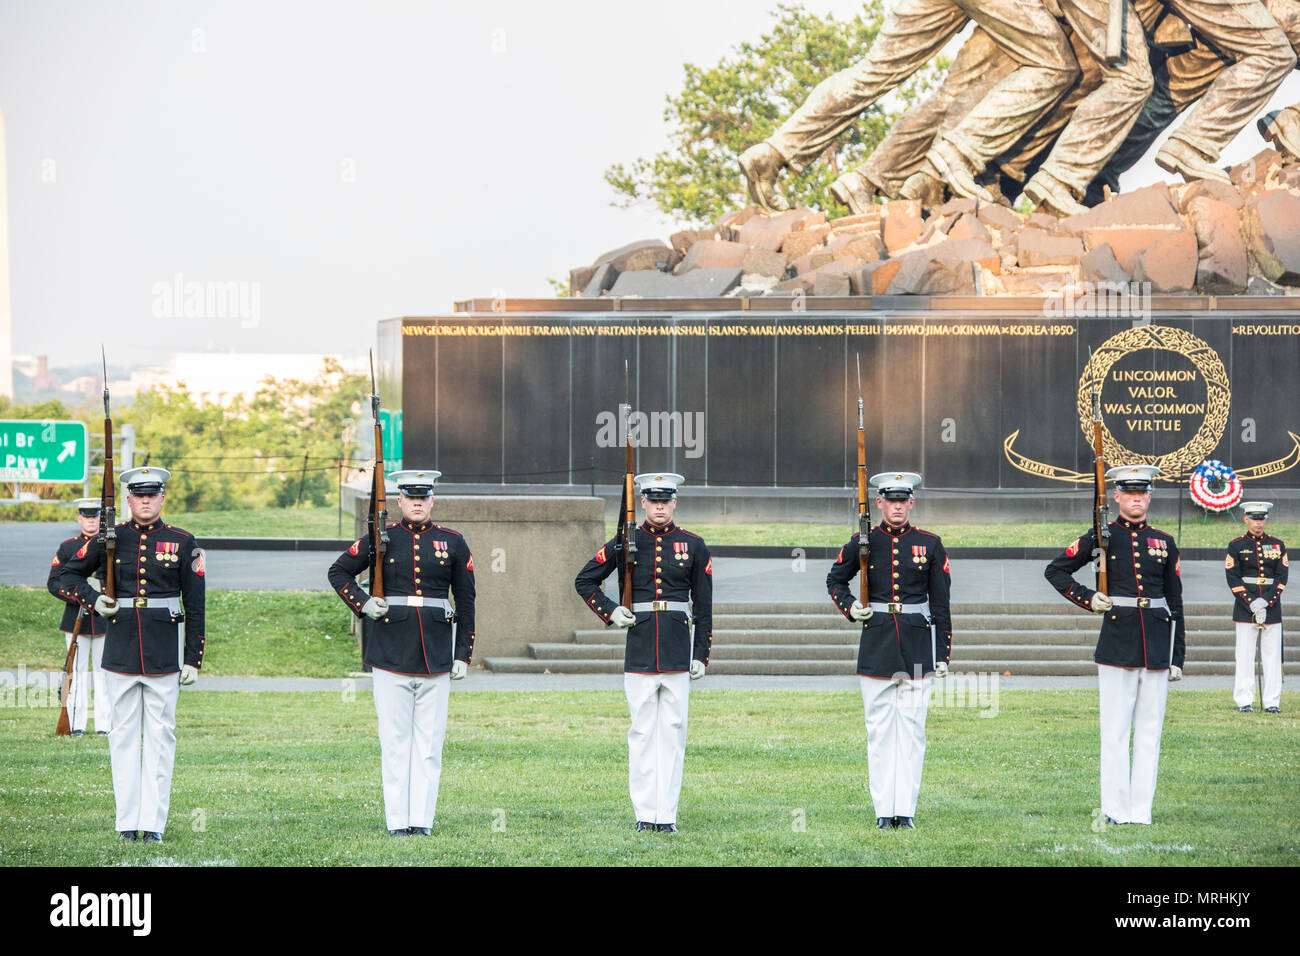 The U.S. Marine Corps Silent Drill Platoon performs during a sunset parade at the Marine Corps War Memorial, Arlington, Va., June 13, 2017. Sunset parades are held as a means of honoring senior officials, distinguished citizens and supporters of the Marine Corps. (U.S. Marine Corps photo by Lance Cpl. Hailey D. Clay) Stock Photo